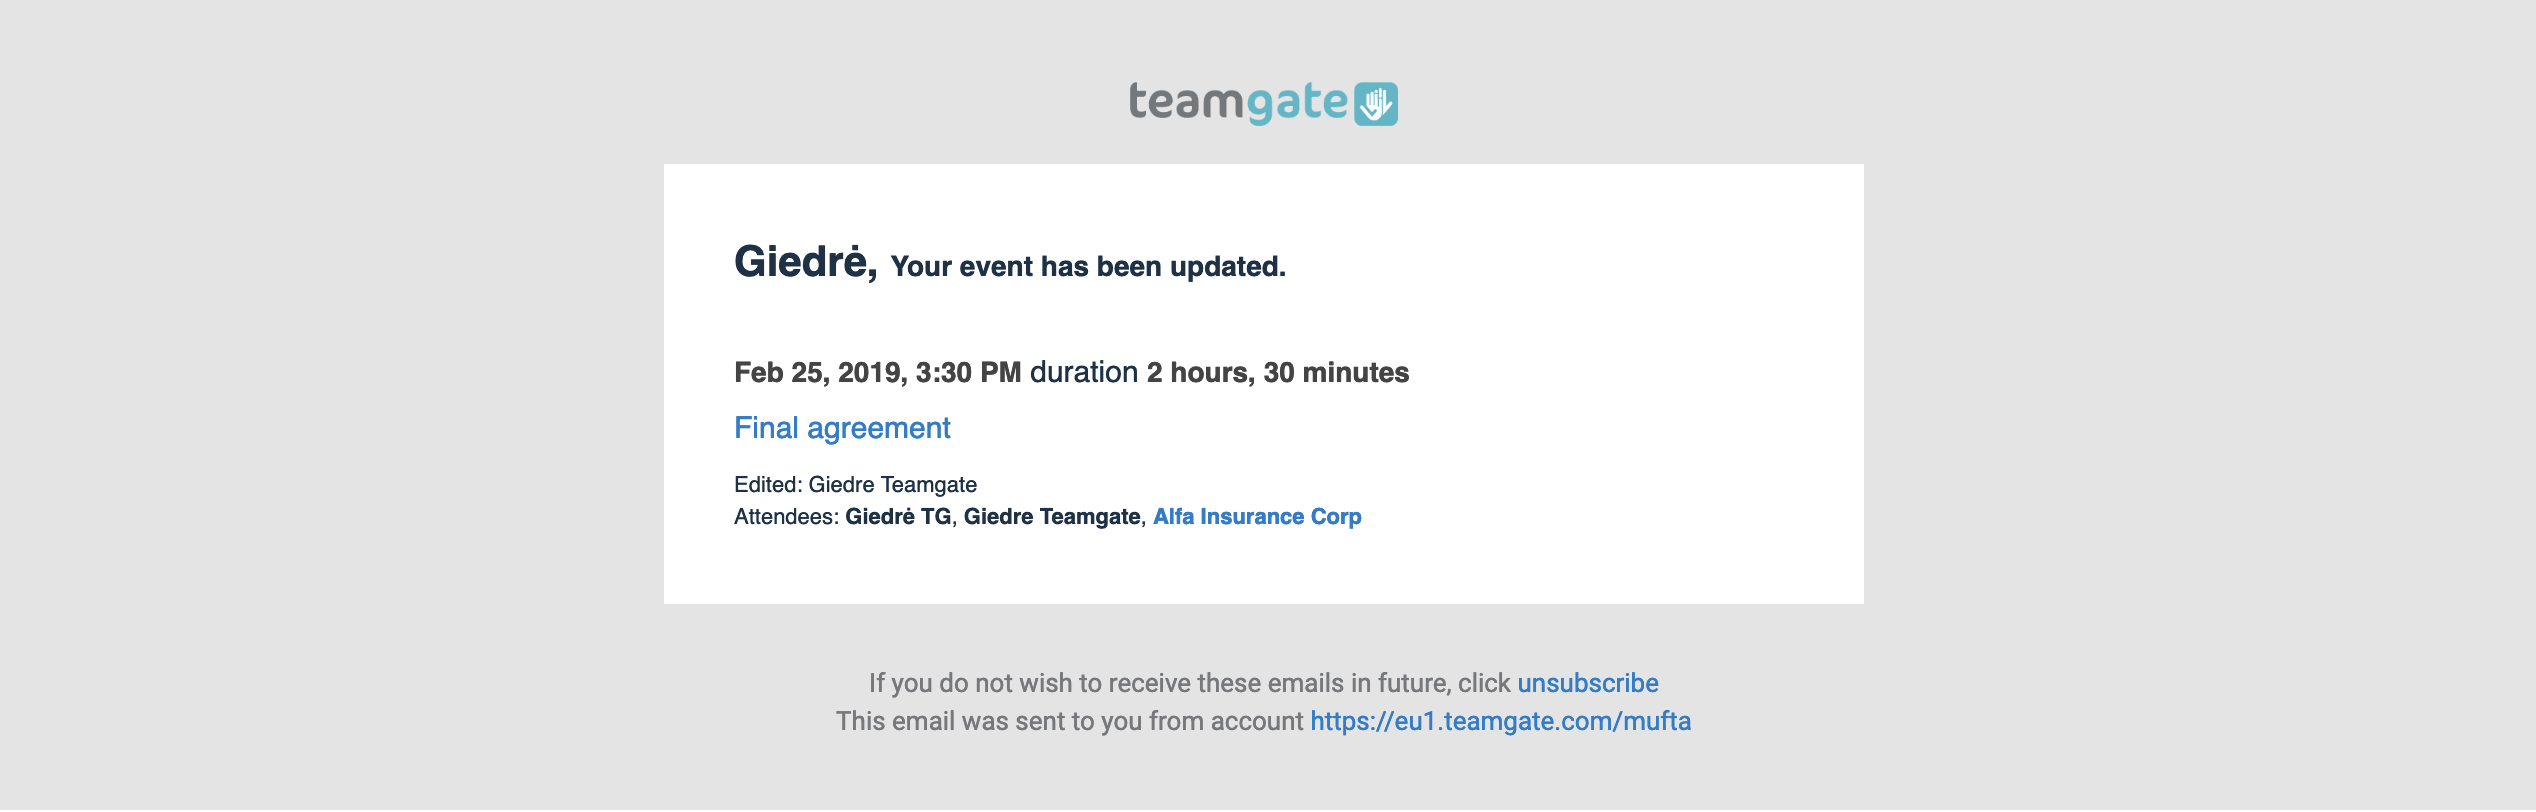 The-event-changes-edited-meeting-_notification-Teamgate-CRM.png